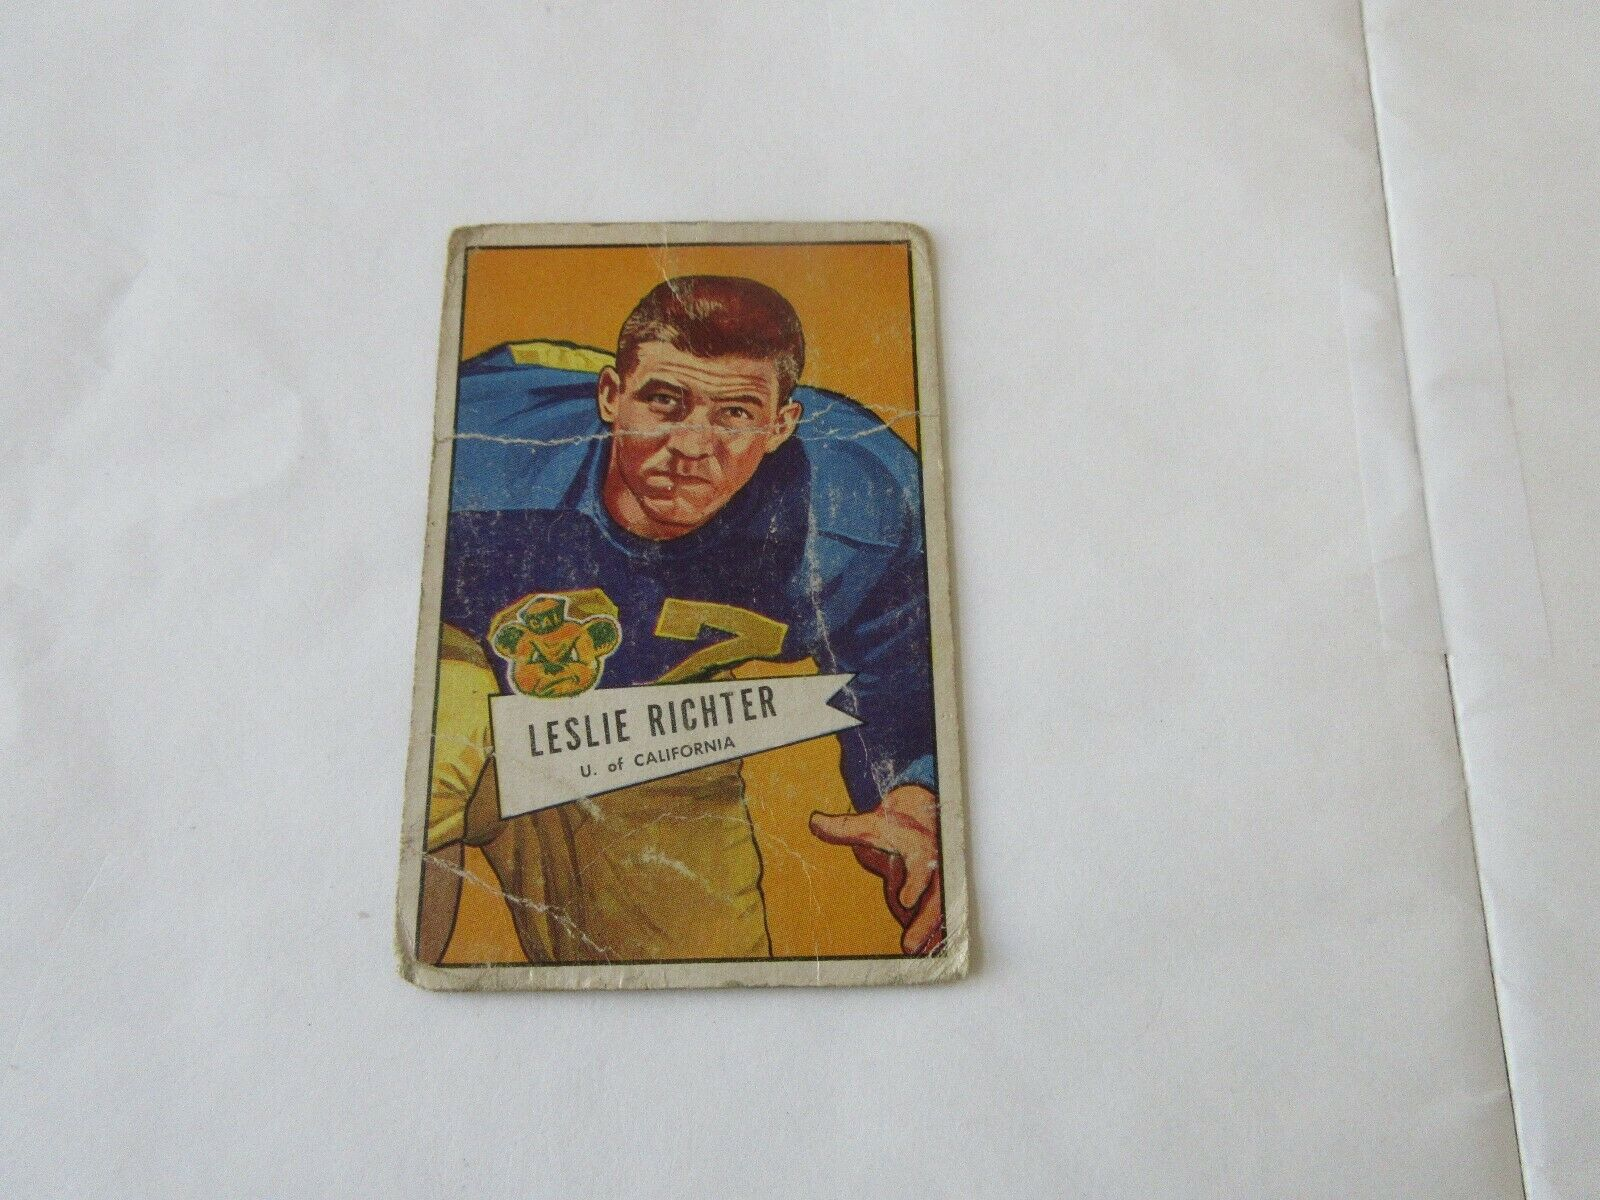 1952 Bowman Football Cards , Leslie Richter # 61 & Jero